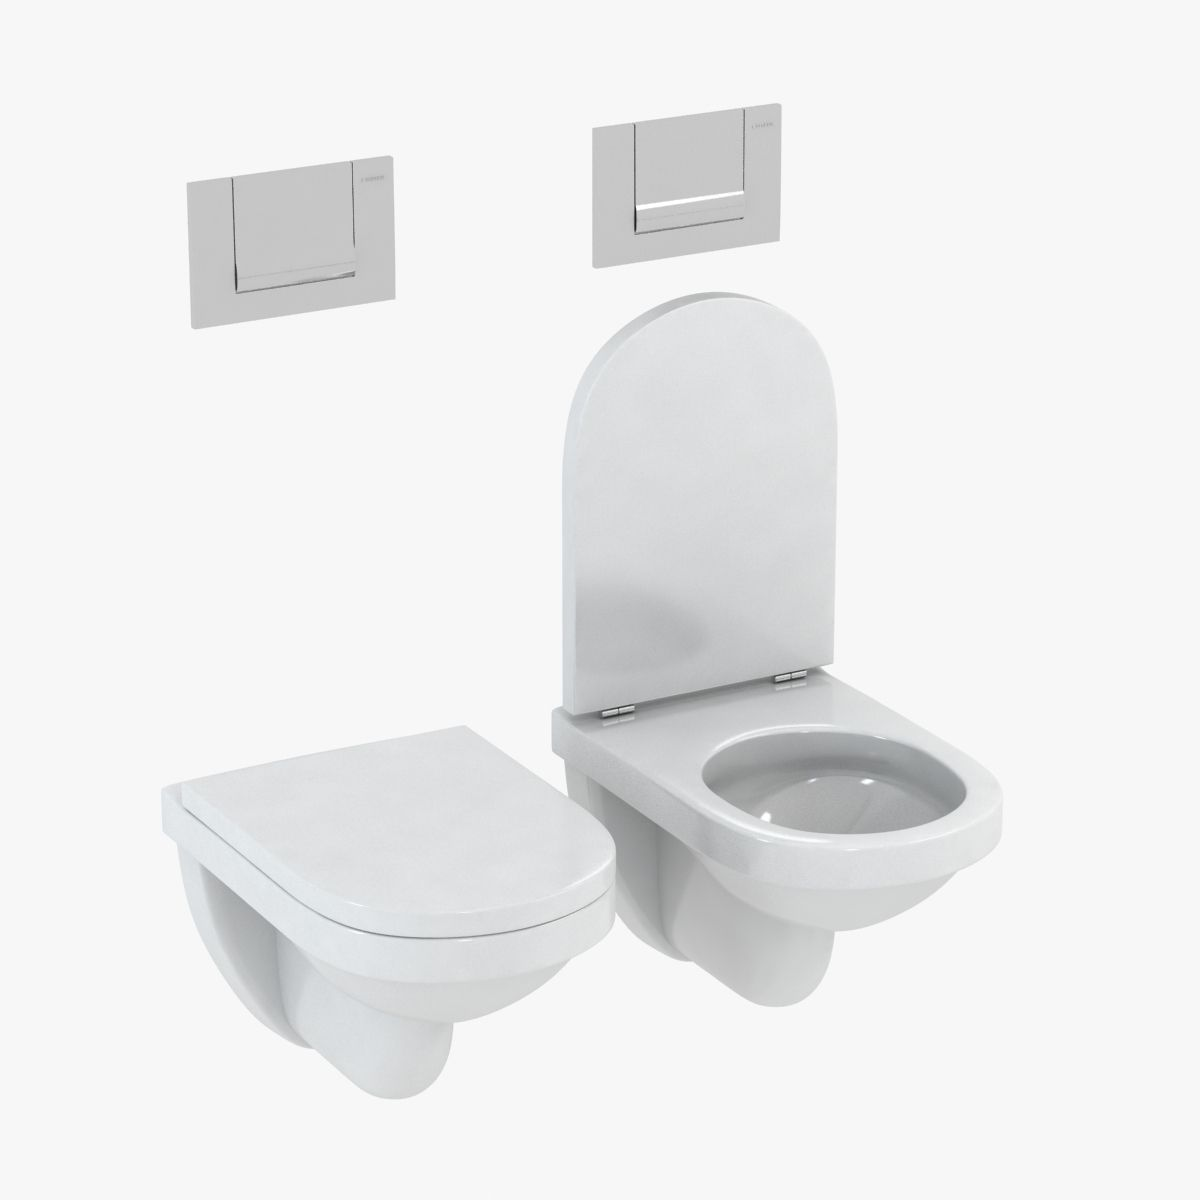 duravit happy d toilet 3d model max obj 3ds fbx mtl 1 - Duravit Toilet